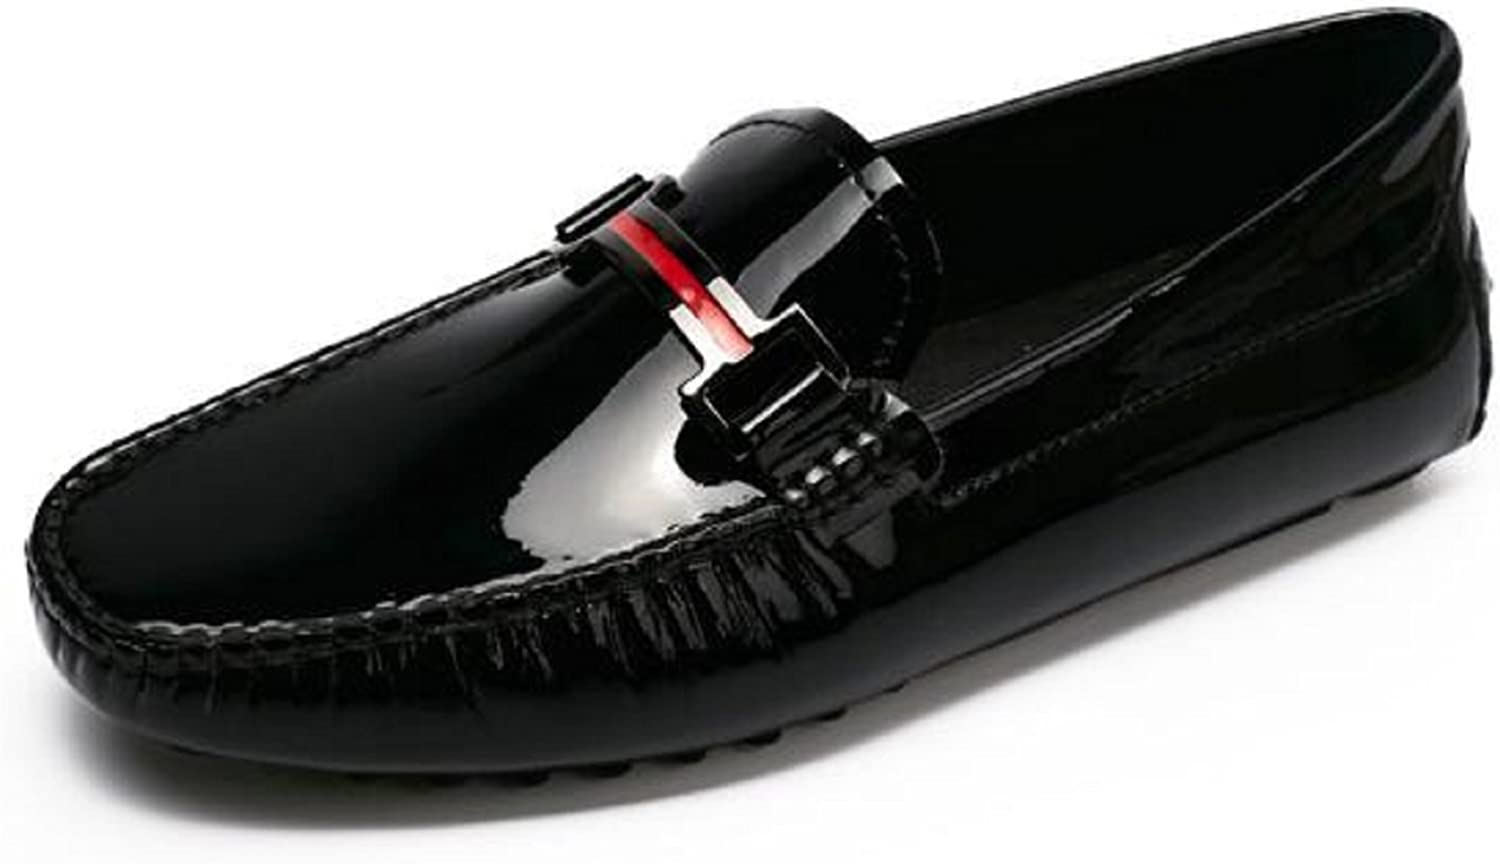 HAPPYSHOP TM Men's Patent Leather Fashion Moccasins Comfort Driving shoes for Any Occasion